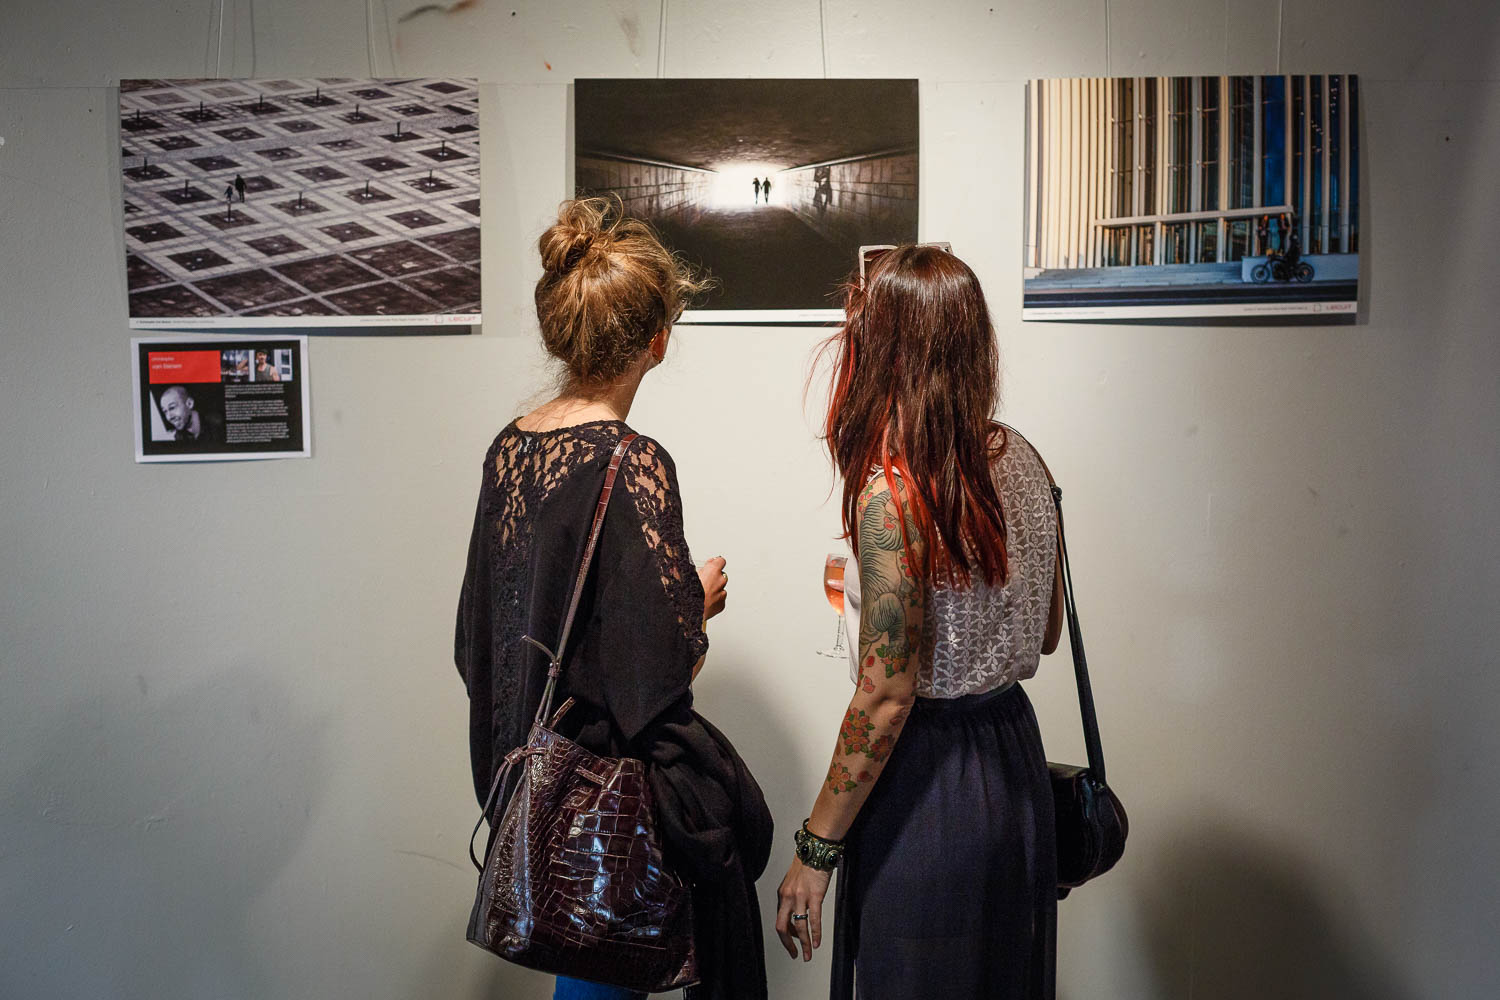 Collective exhibition by Street Photography Luxembourg at KUFA Kulturfabrik in Esch-sur-Alzette - Photography by Christophe Van Biesen - Landscape and Travel Photographer from Luxembourg